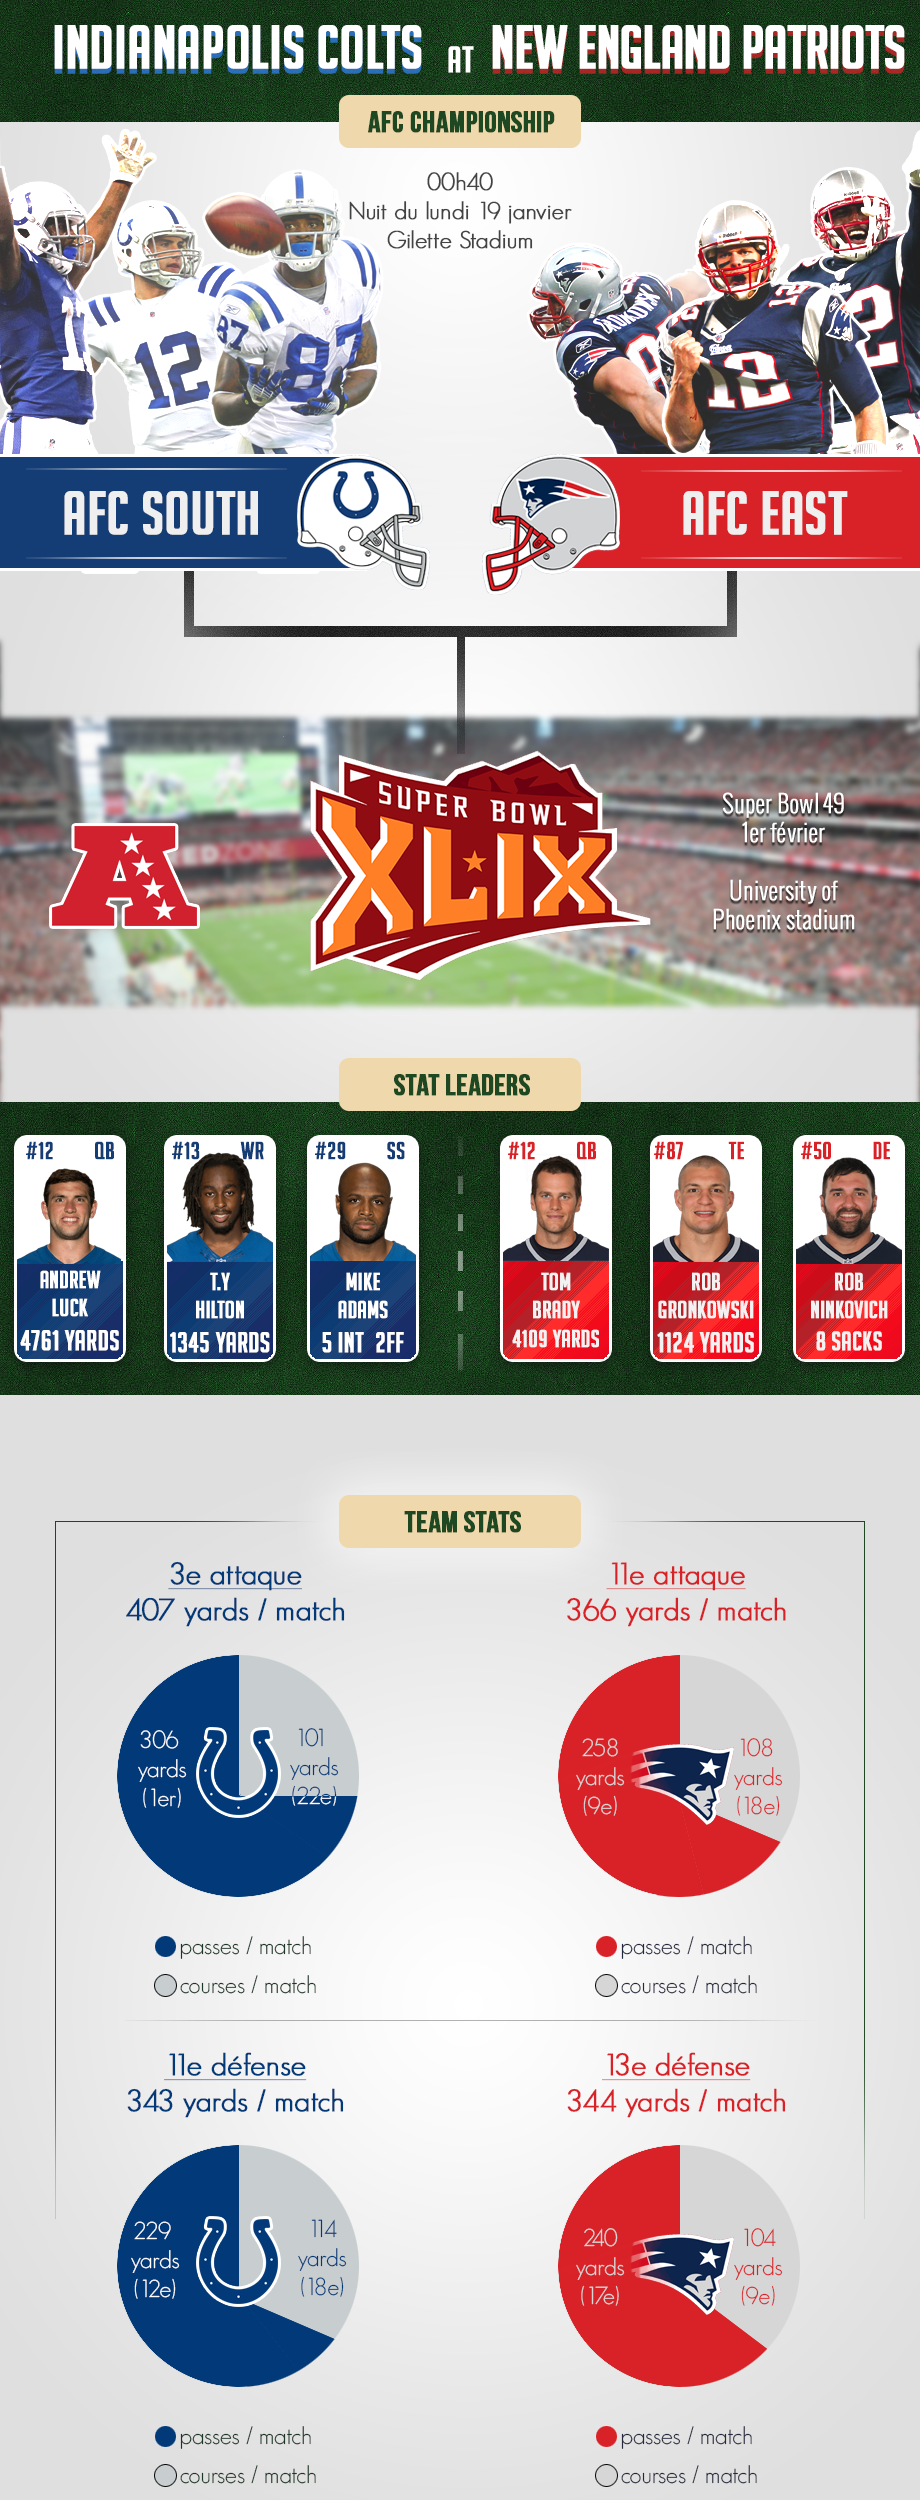 InfographieConfChamp2014-ColtsPatriots